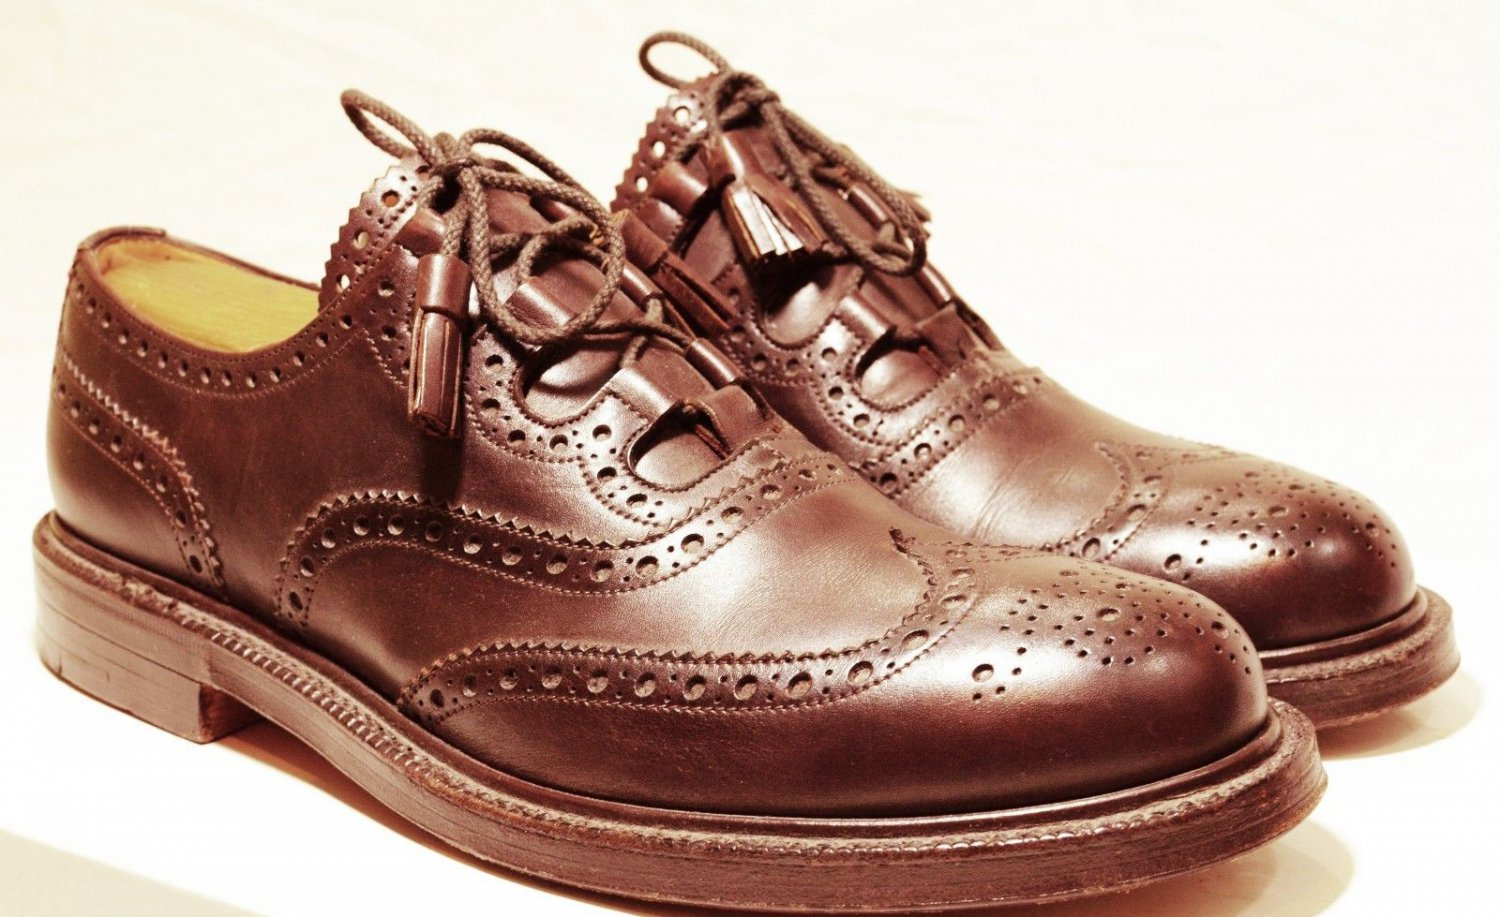 Size 13 US Highland Kilt Brown Leather Shoes Ghillie Brogues Leather Sole And Leather Upper